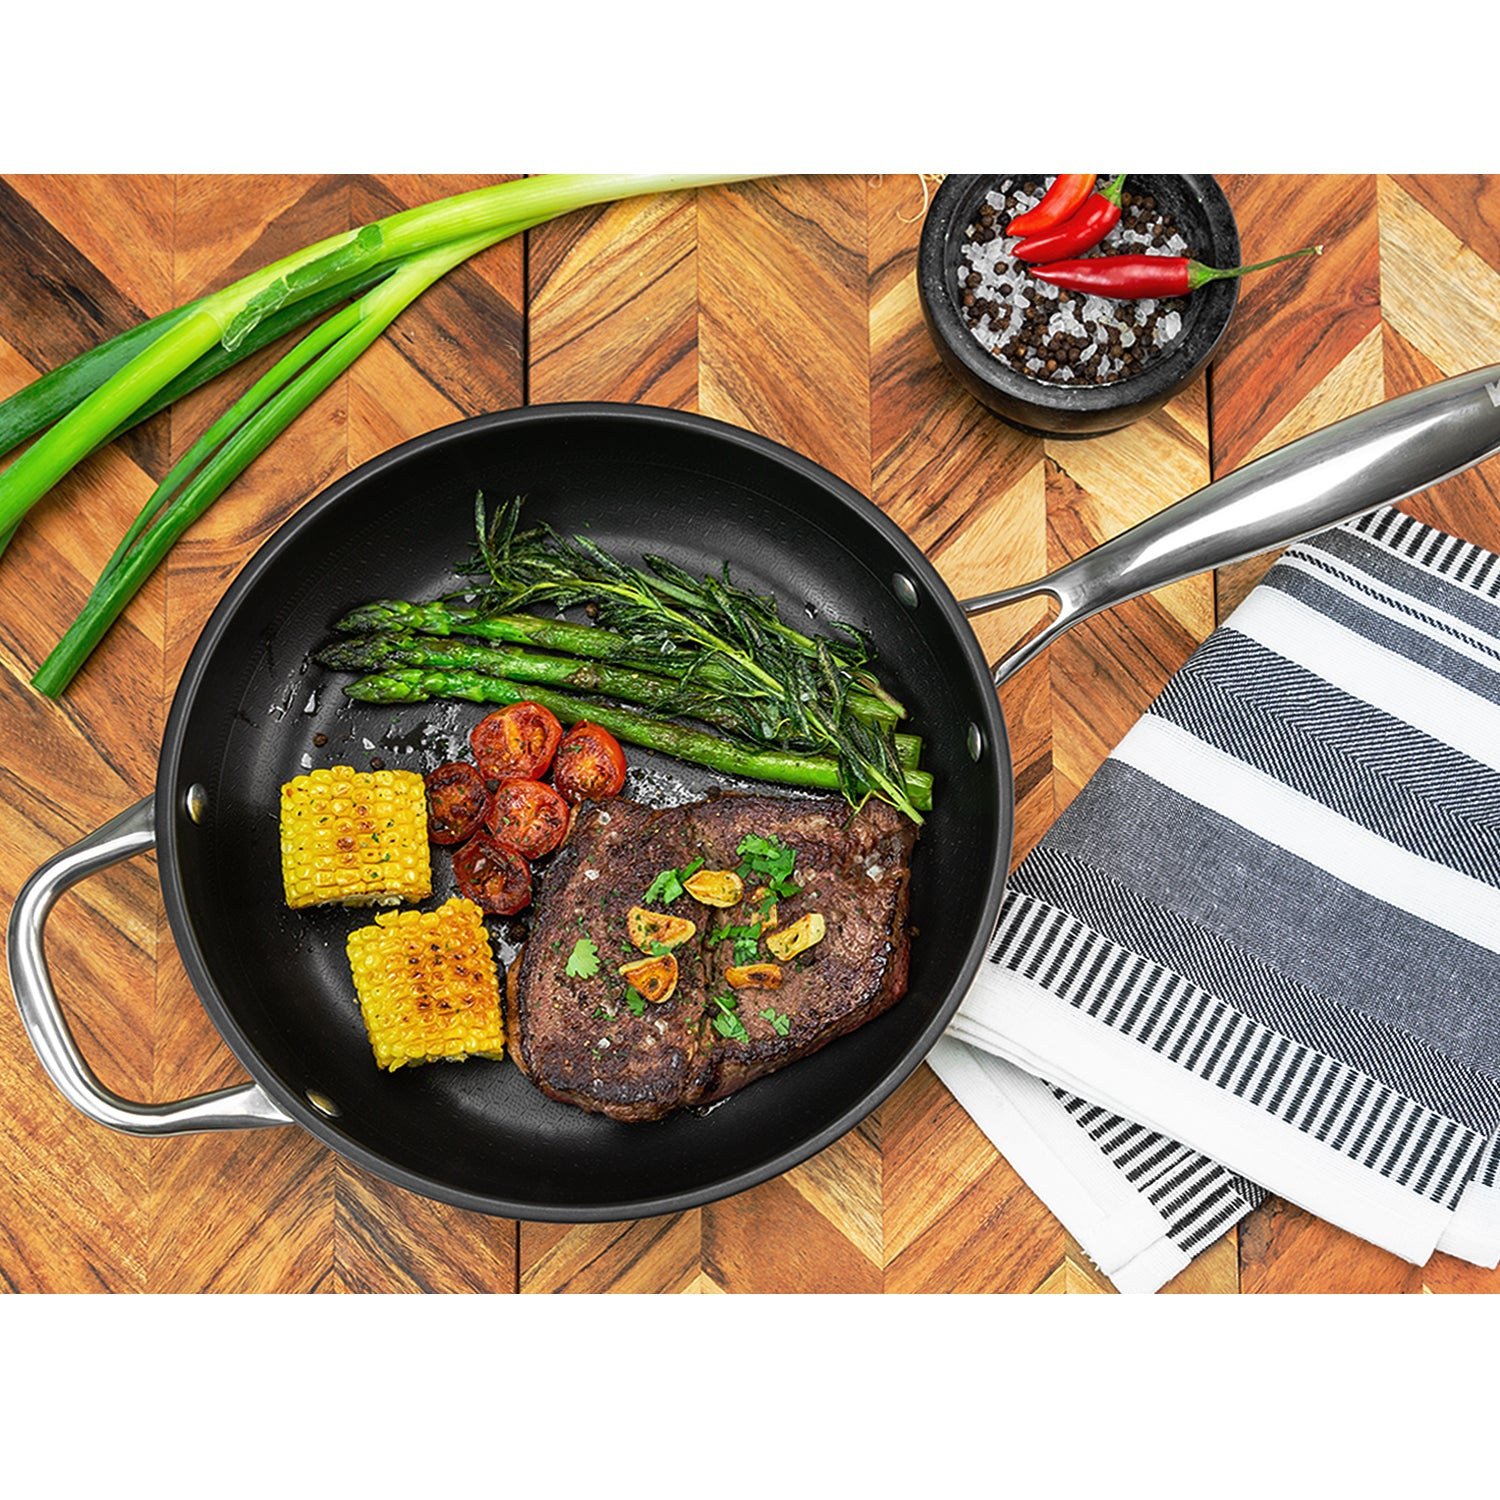 Perfect Pro Pan with cooked steak and vegetables on a table.